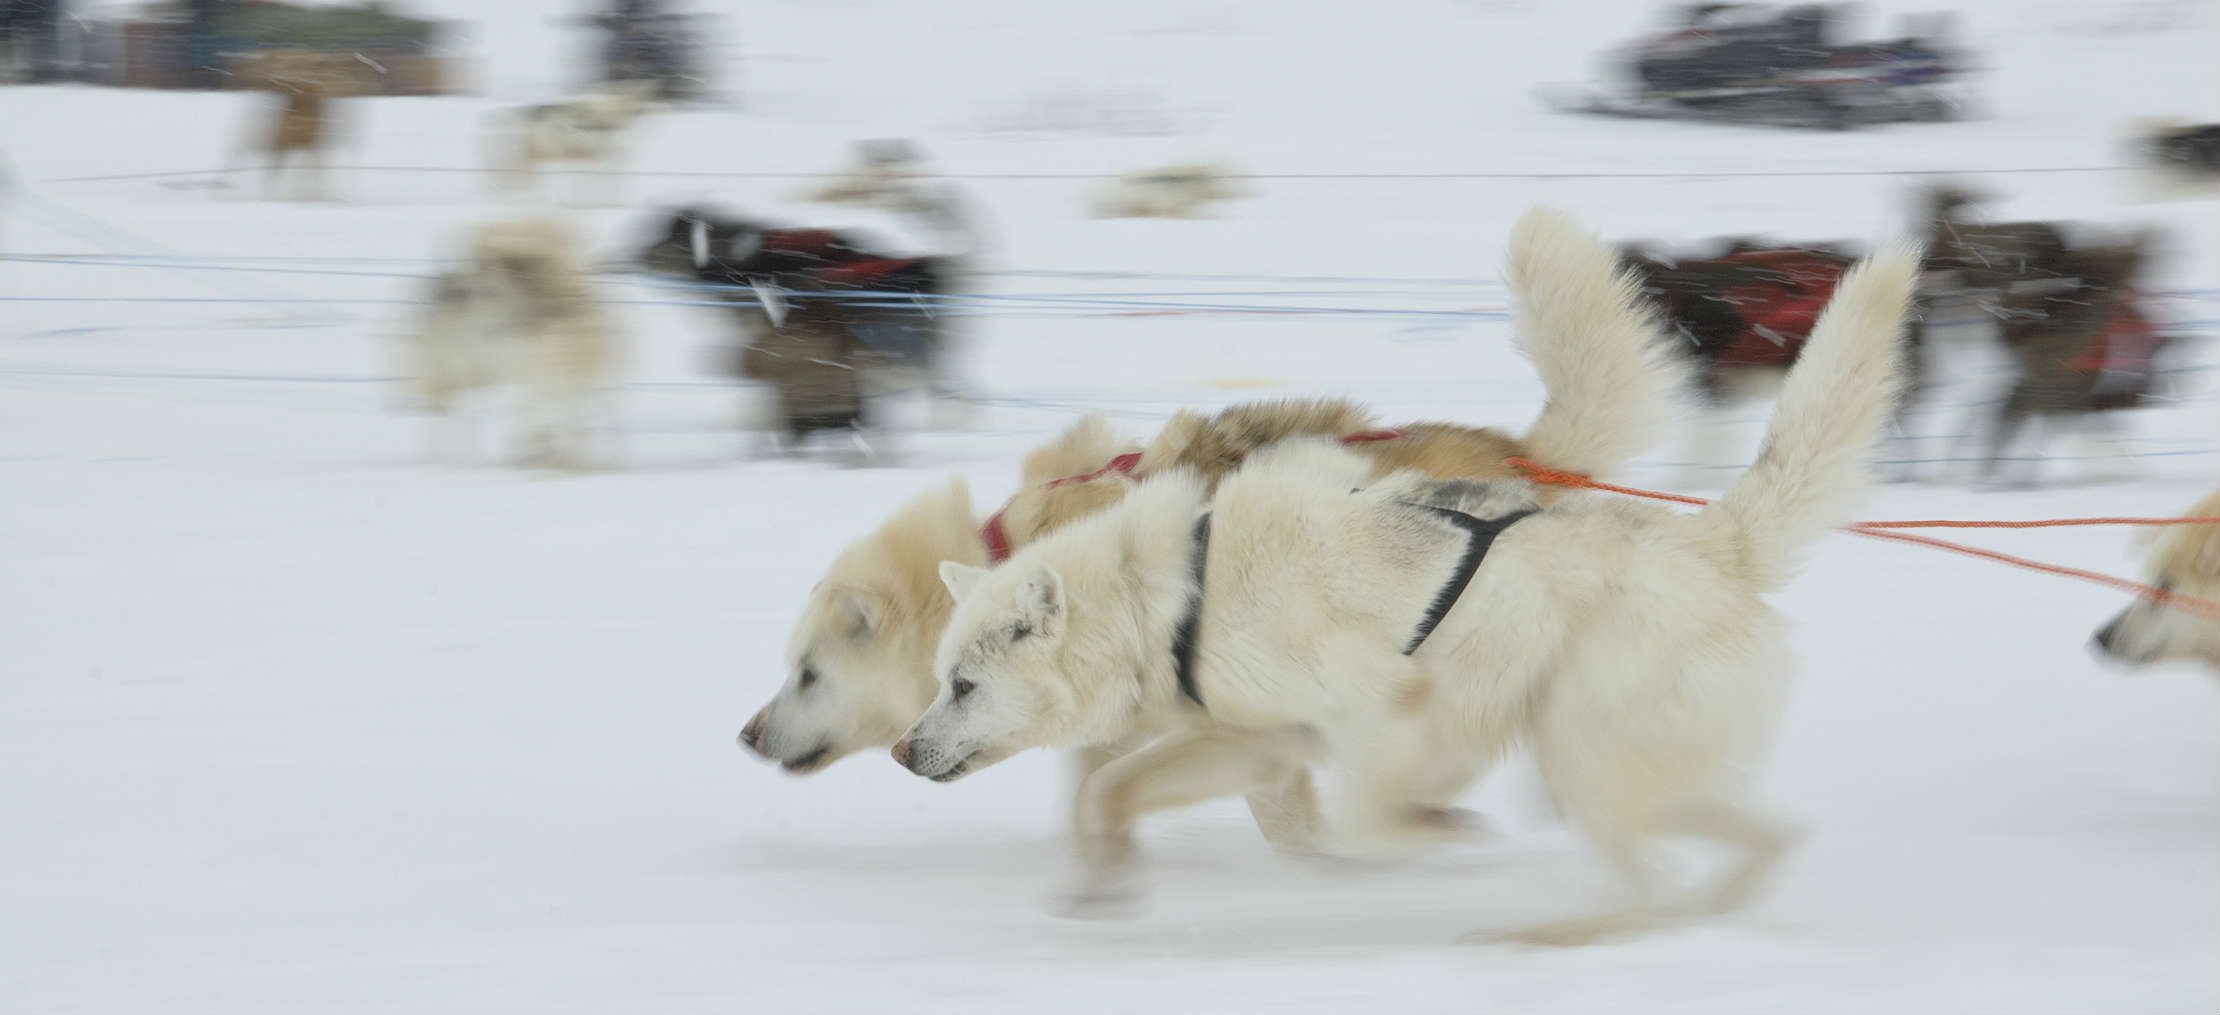 2 Inuits dogs racing at Ivakkak 2015